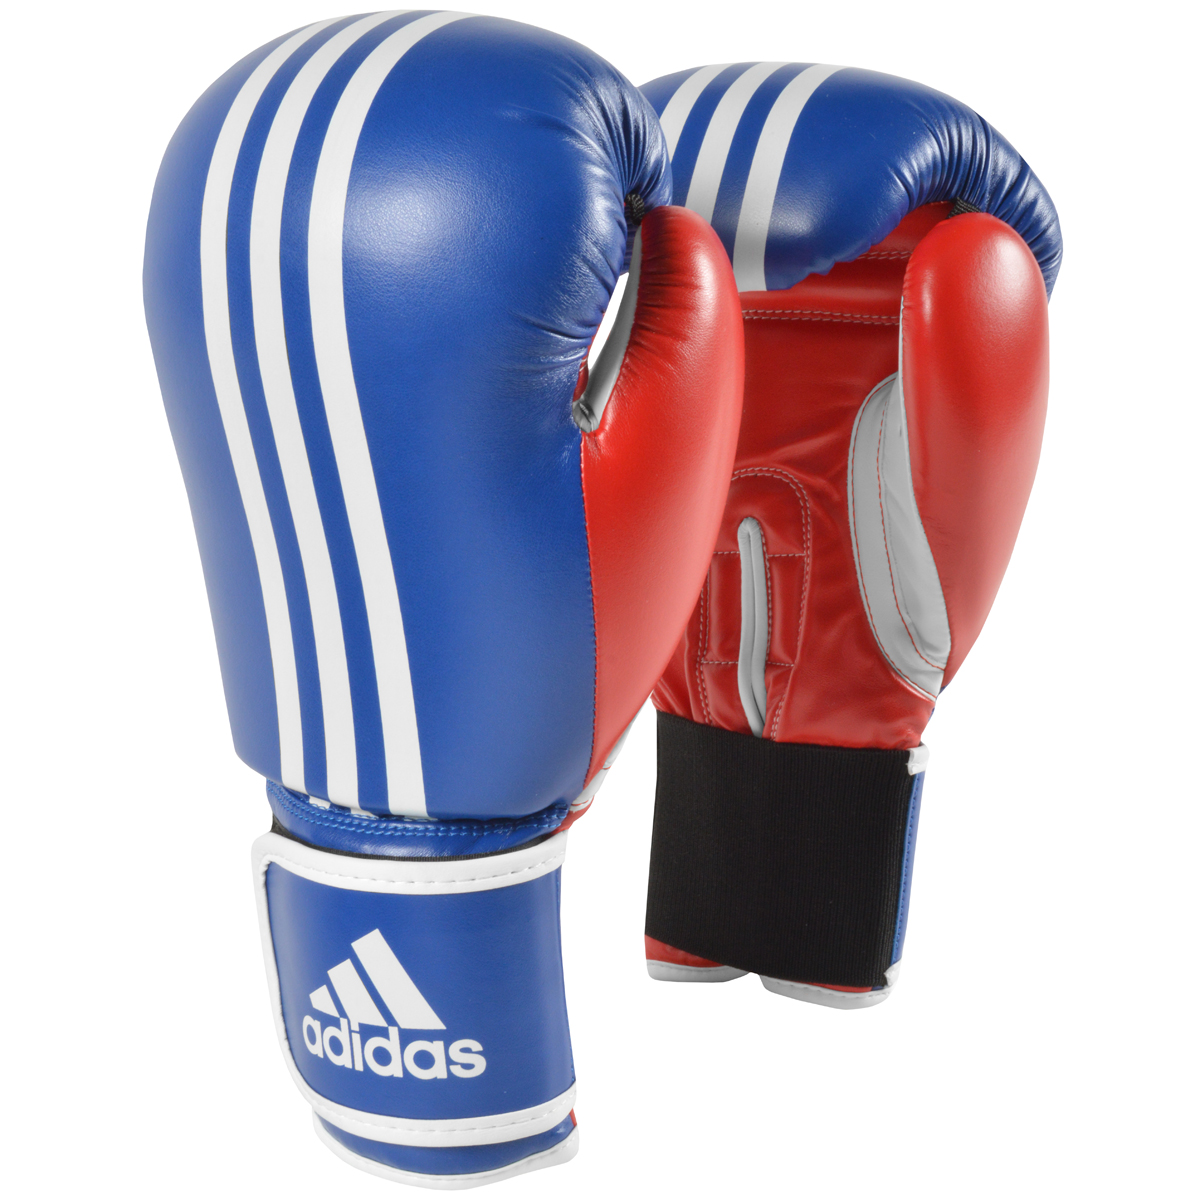 a843572f1 Details about Adidas Response Hook and Loop Training Boxing Gloves -  Blue Red White